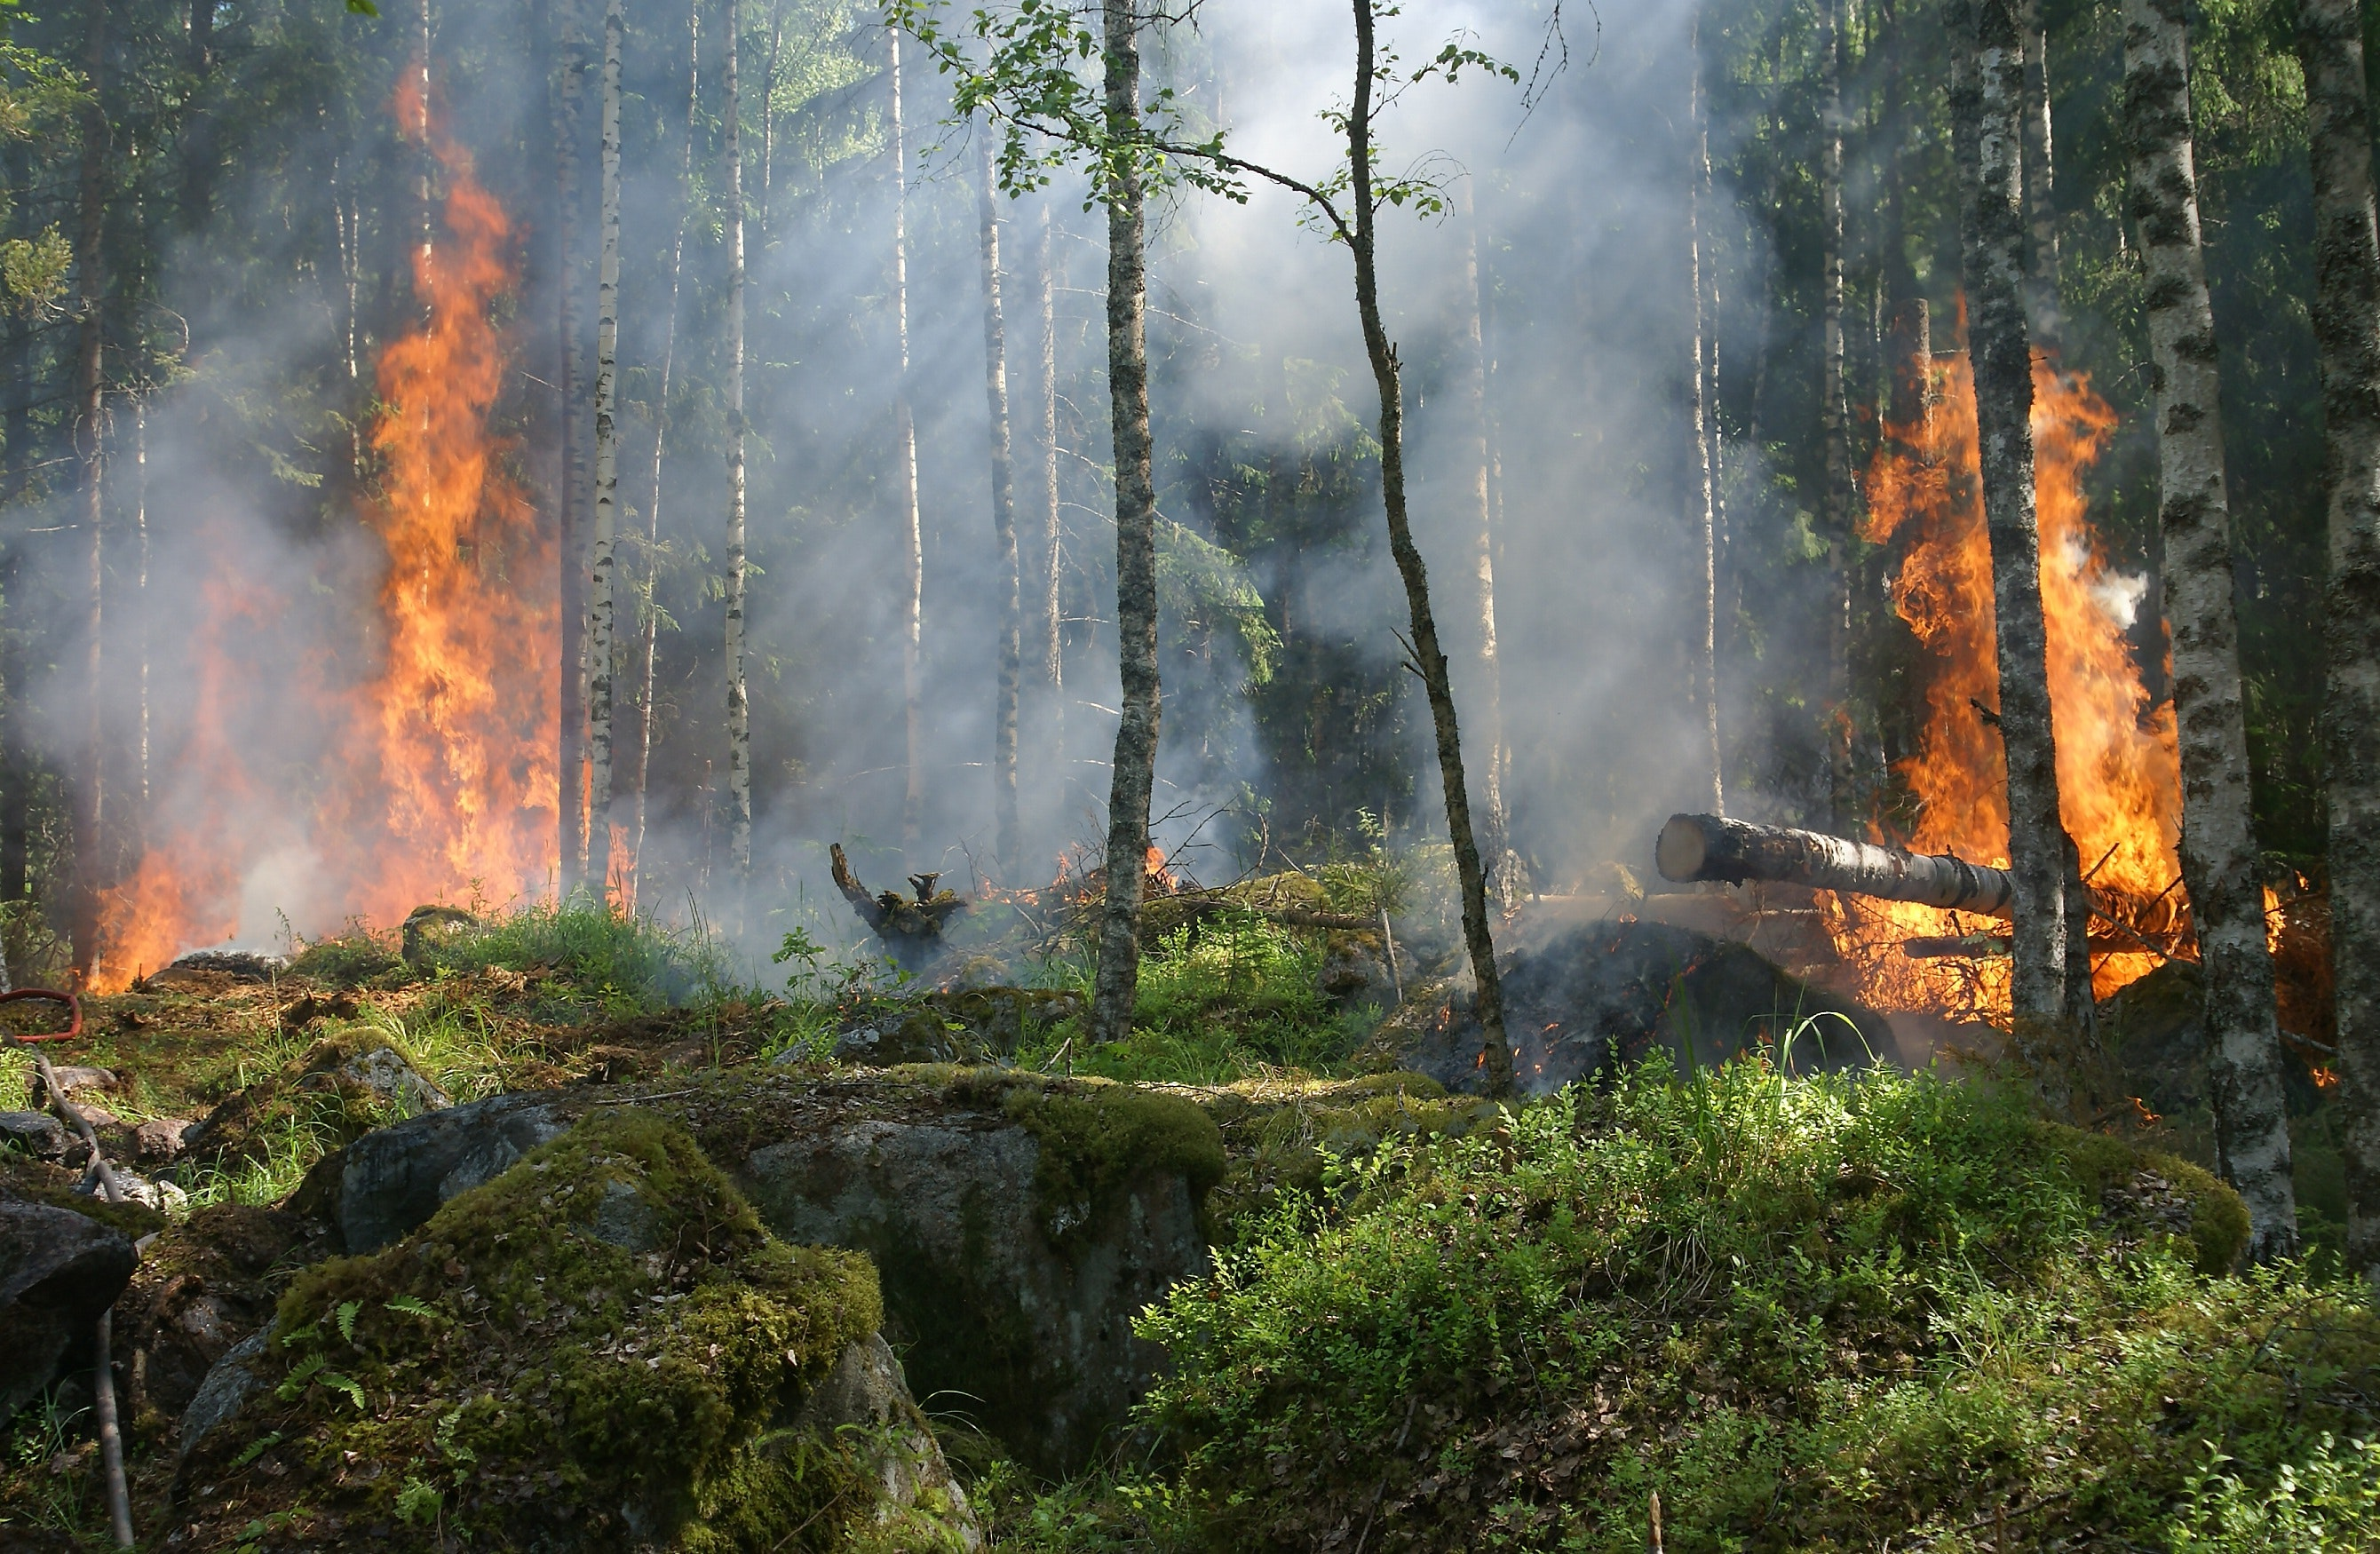 Effects of Deforestation: How Does Agriculture Cause Deforestation?